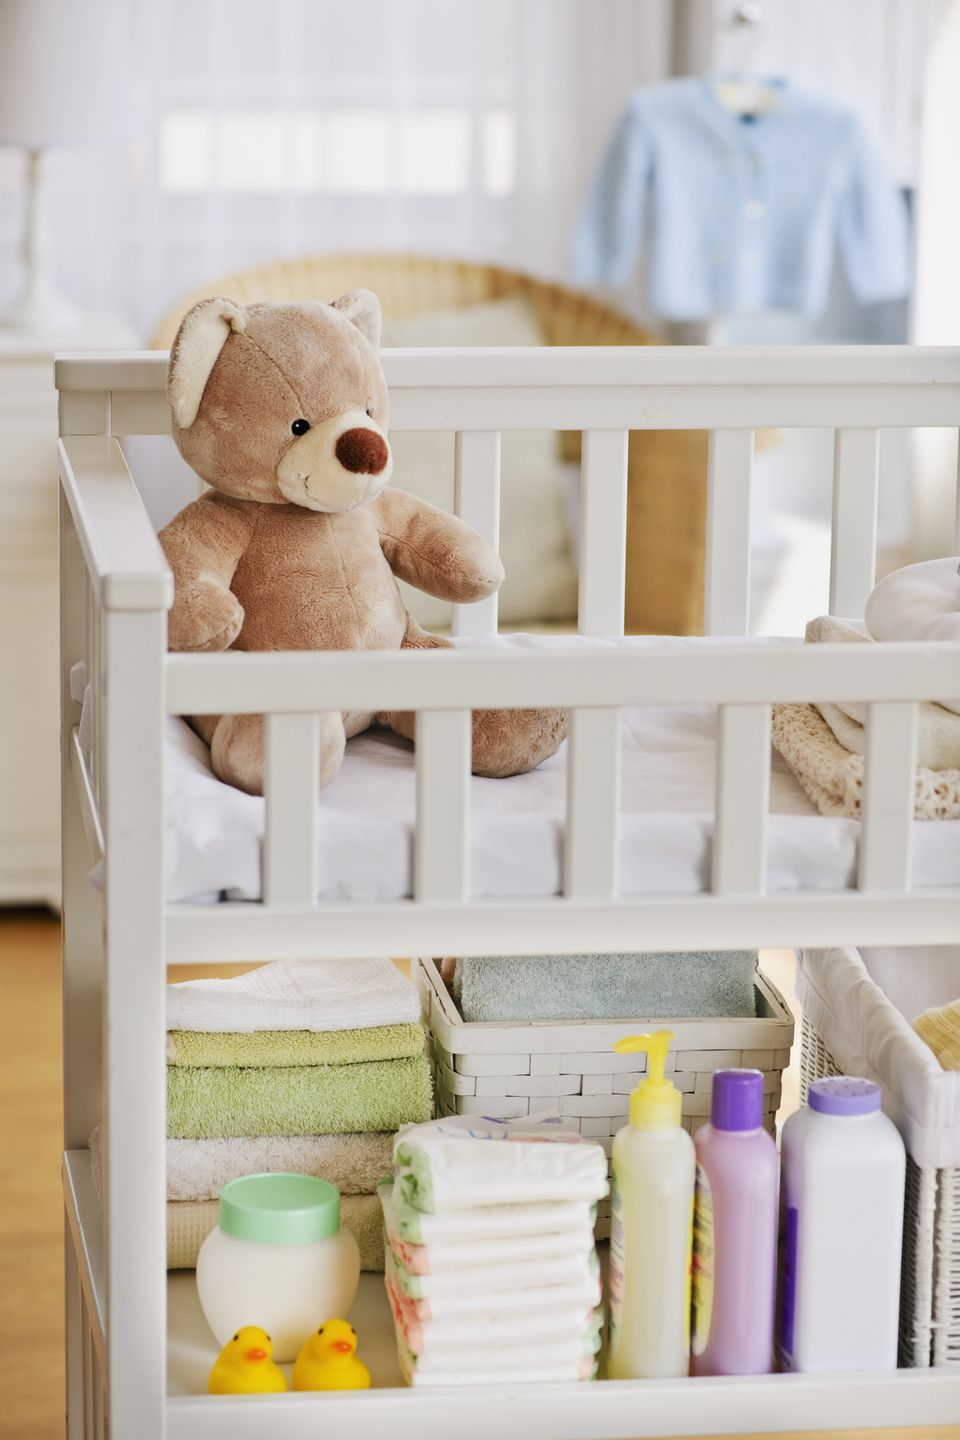 What are eco-friendly baby products?